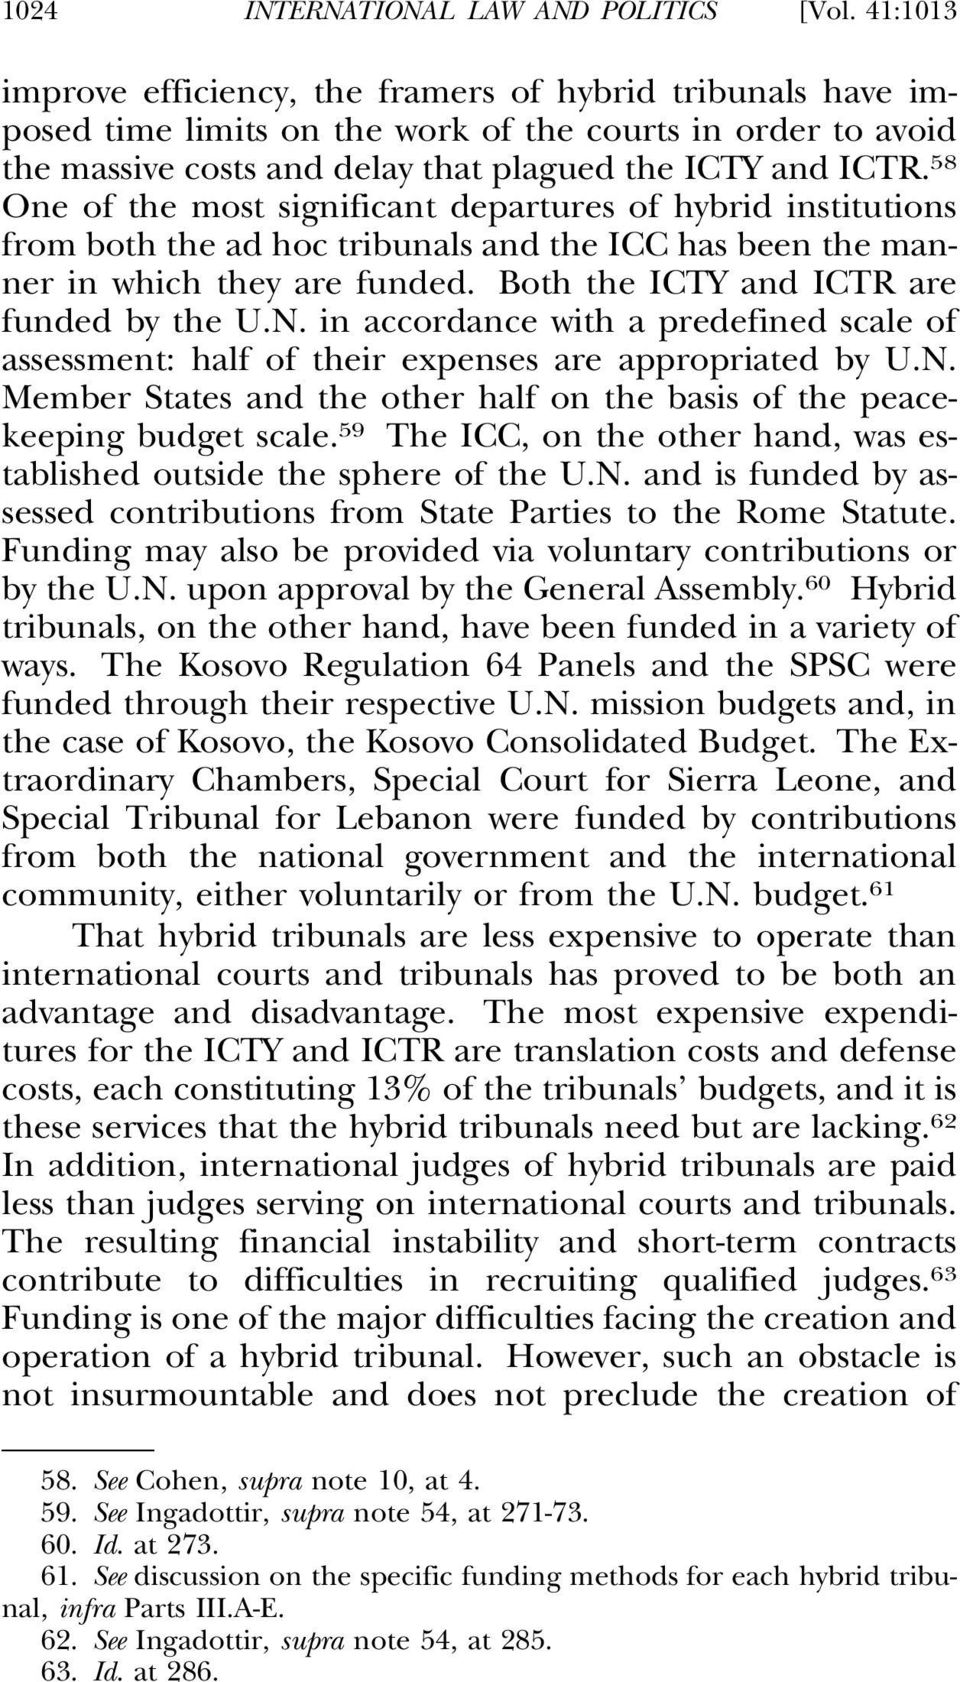 58 One of the most significant departures of hybrid institutions from both the ad hoc tribunals and the ICC has been the manner in which they are funded. Both the ICTY and ICTR are funded by the U.N.